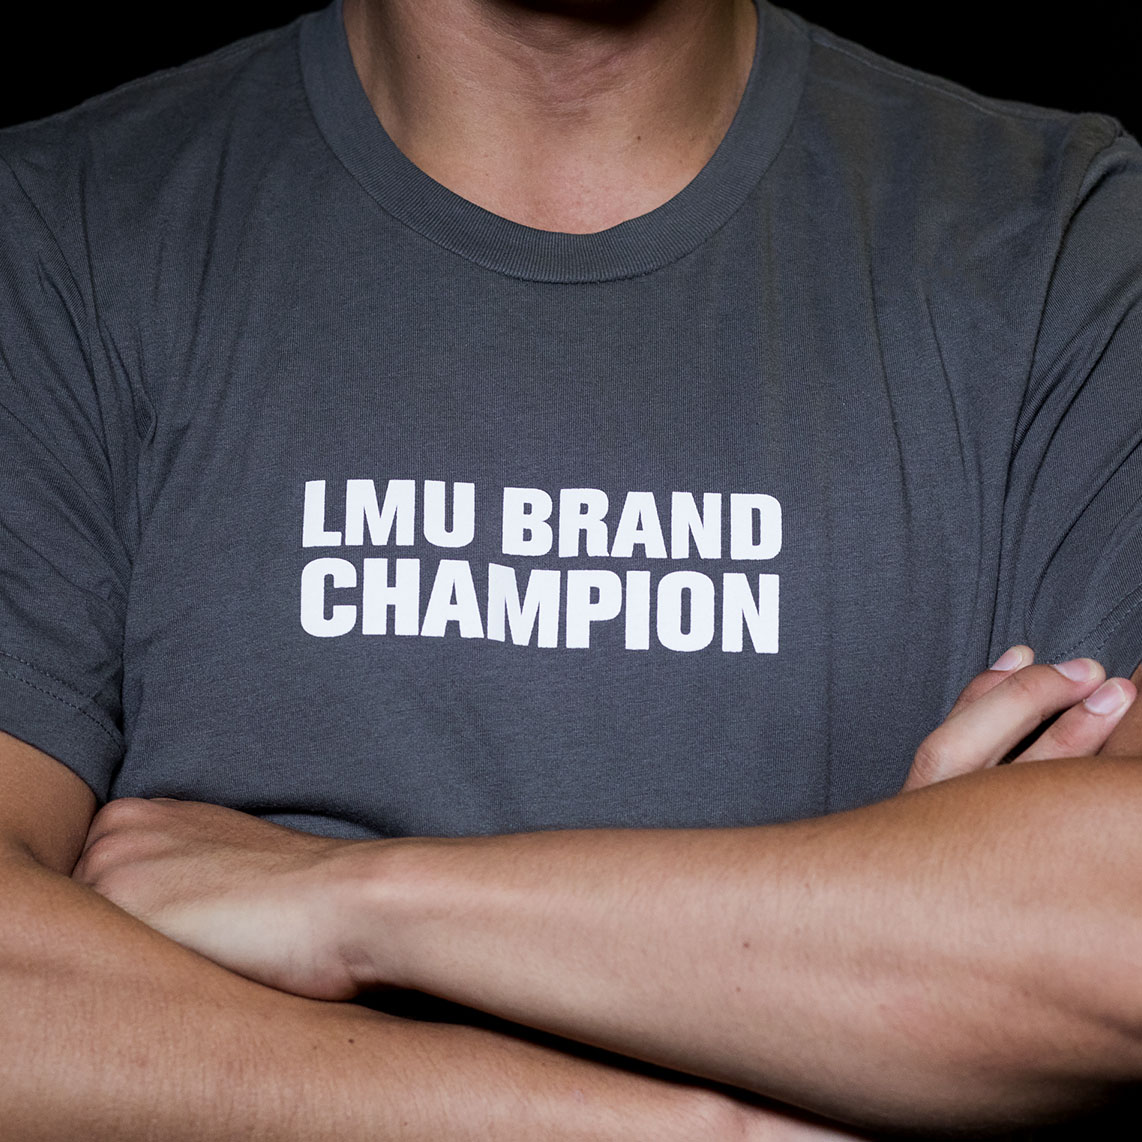 t-shirt that reads LMU BRAND CHAMPION